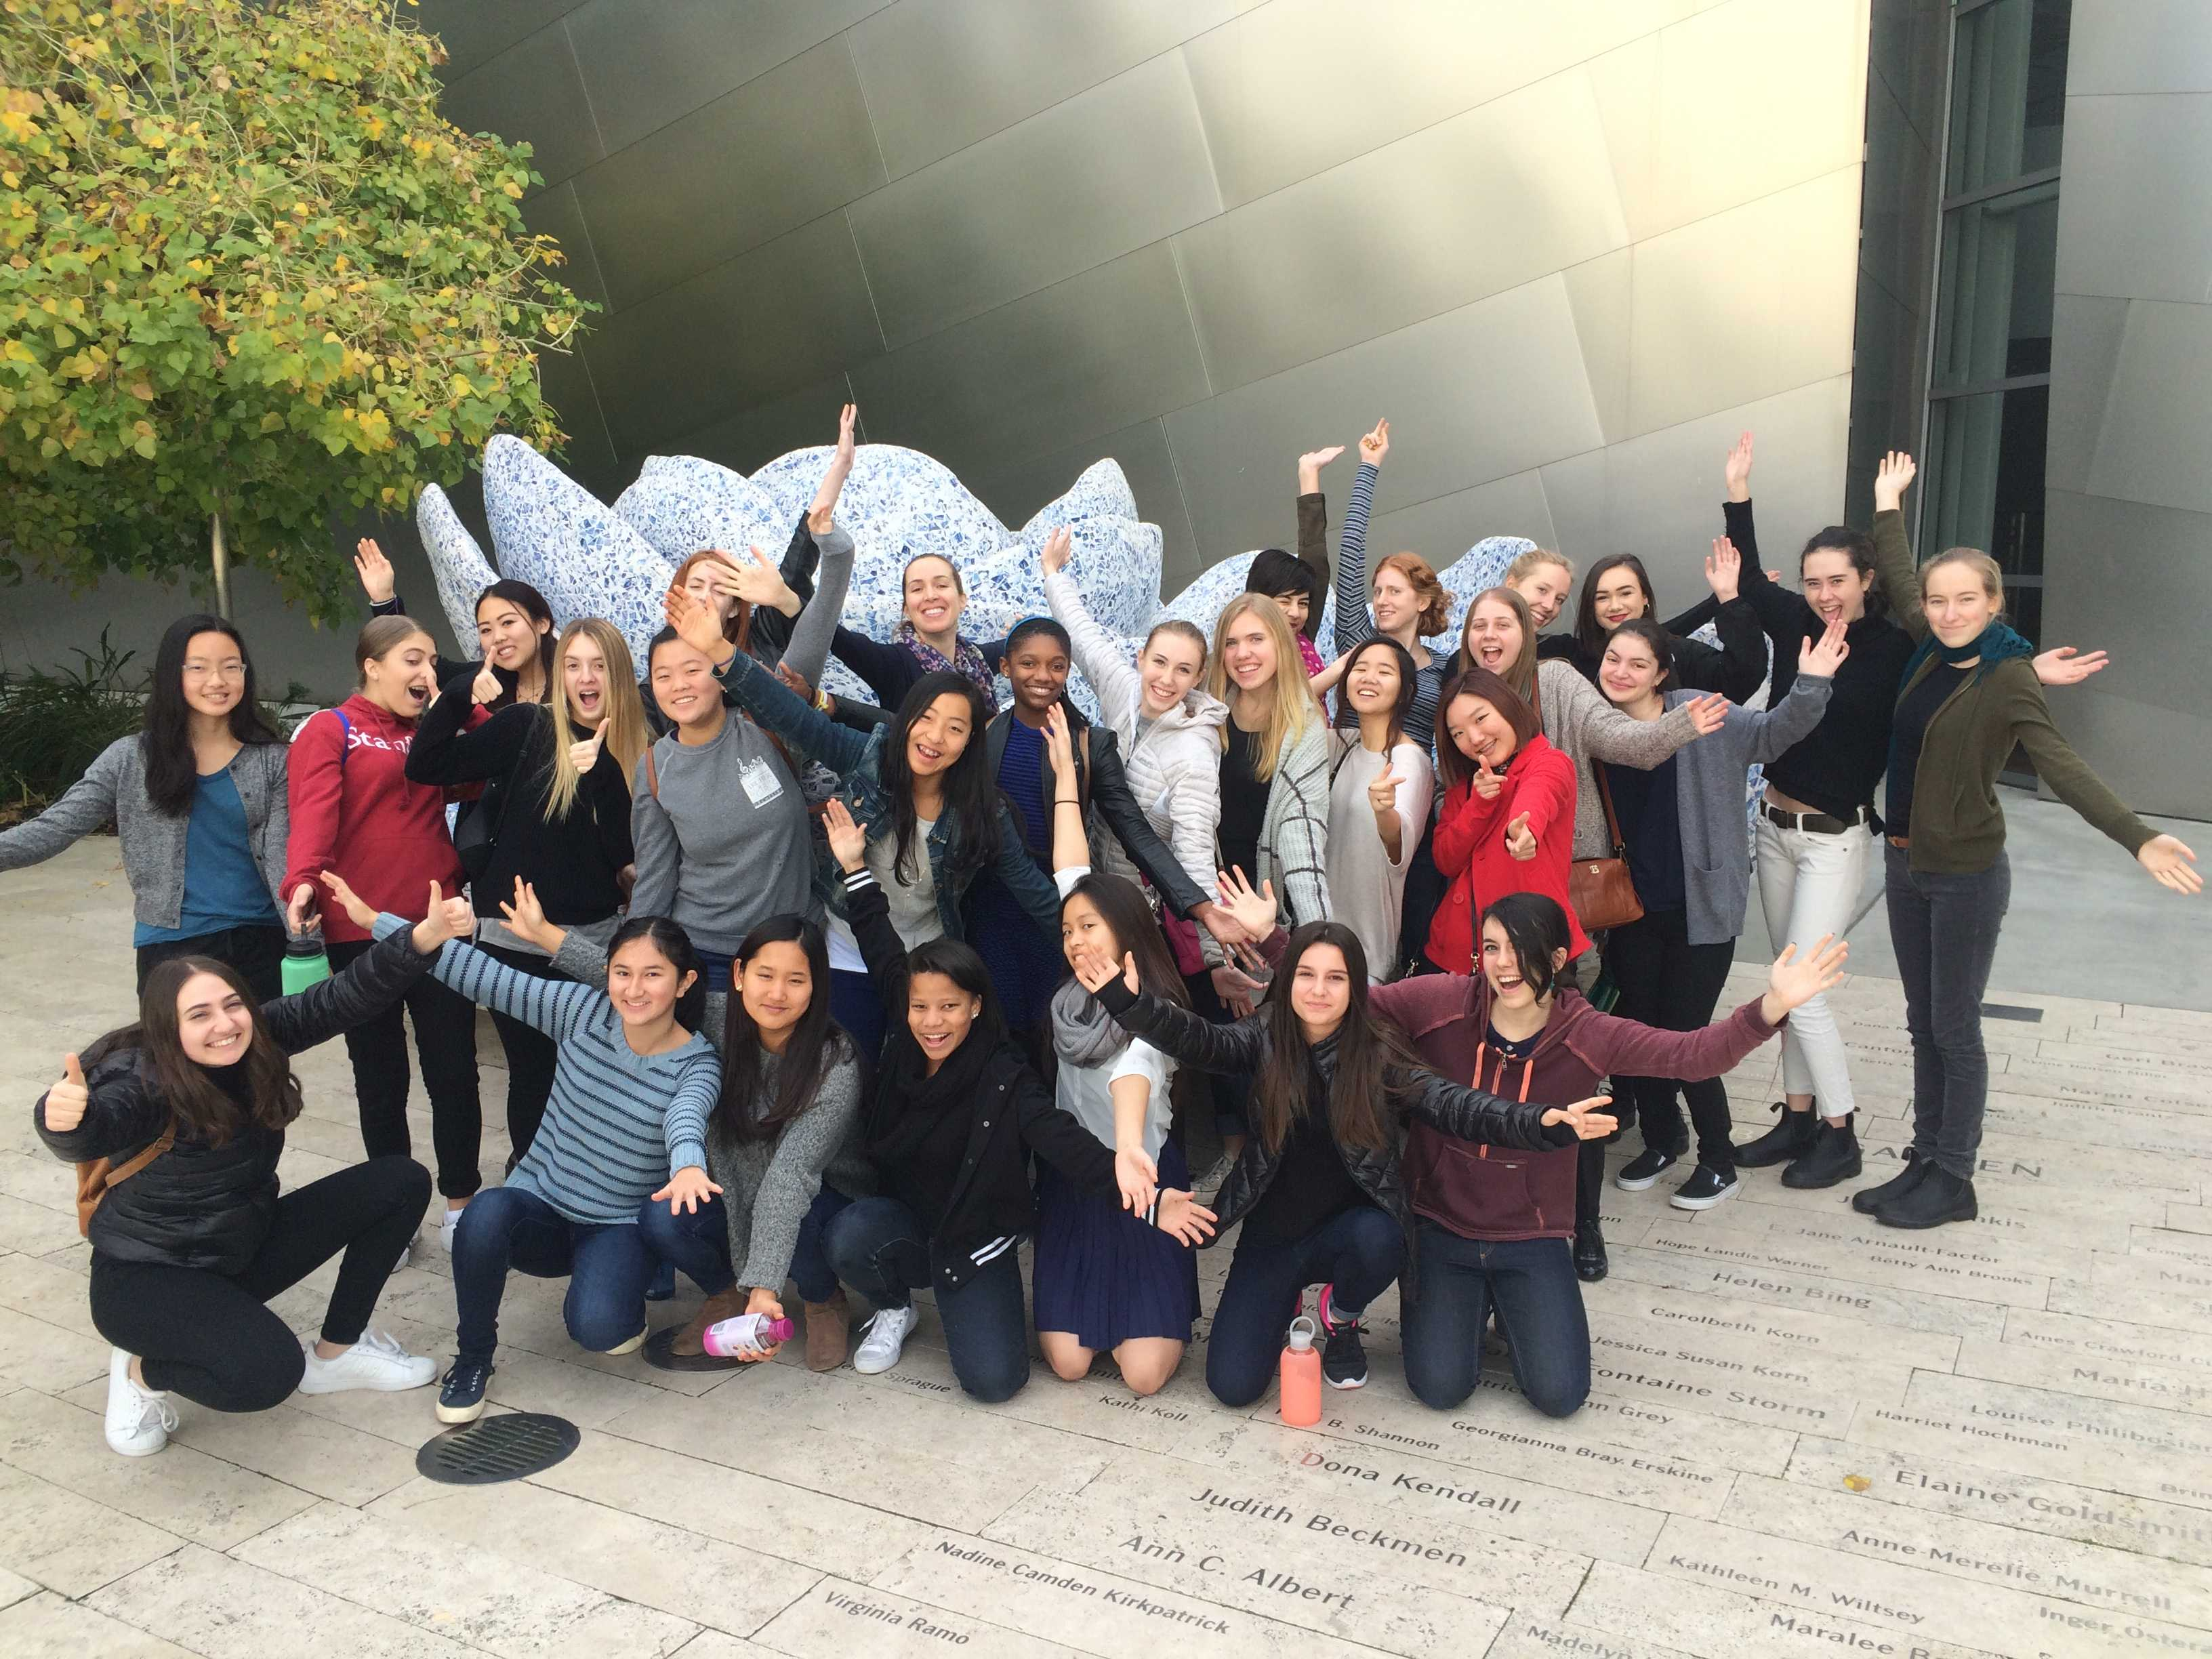 The Archer Orchestra poses together in Downtown LA during their visit to the Walt Disney Concert Hall. The group listened to and worked with the Los Angeles Philharmonic.